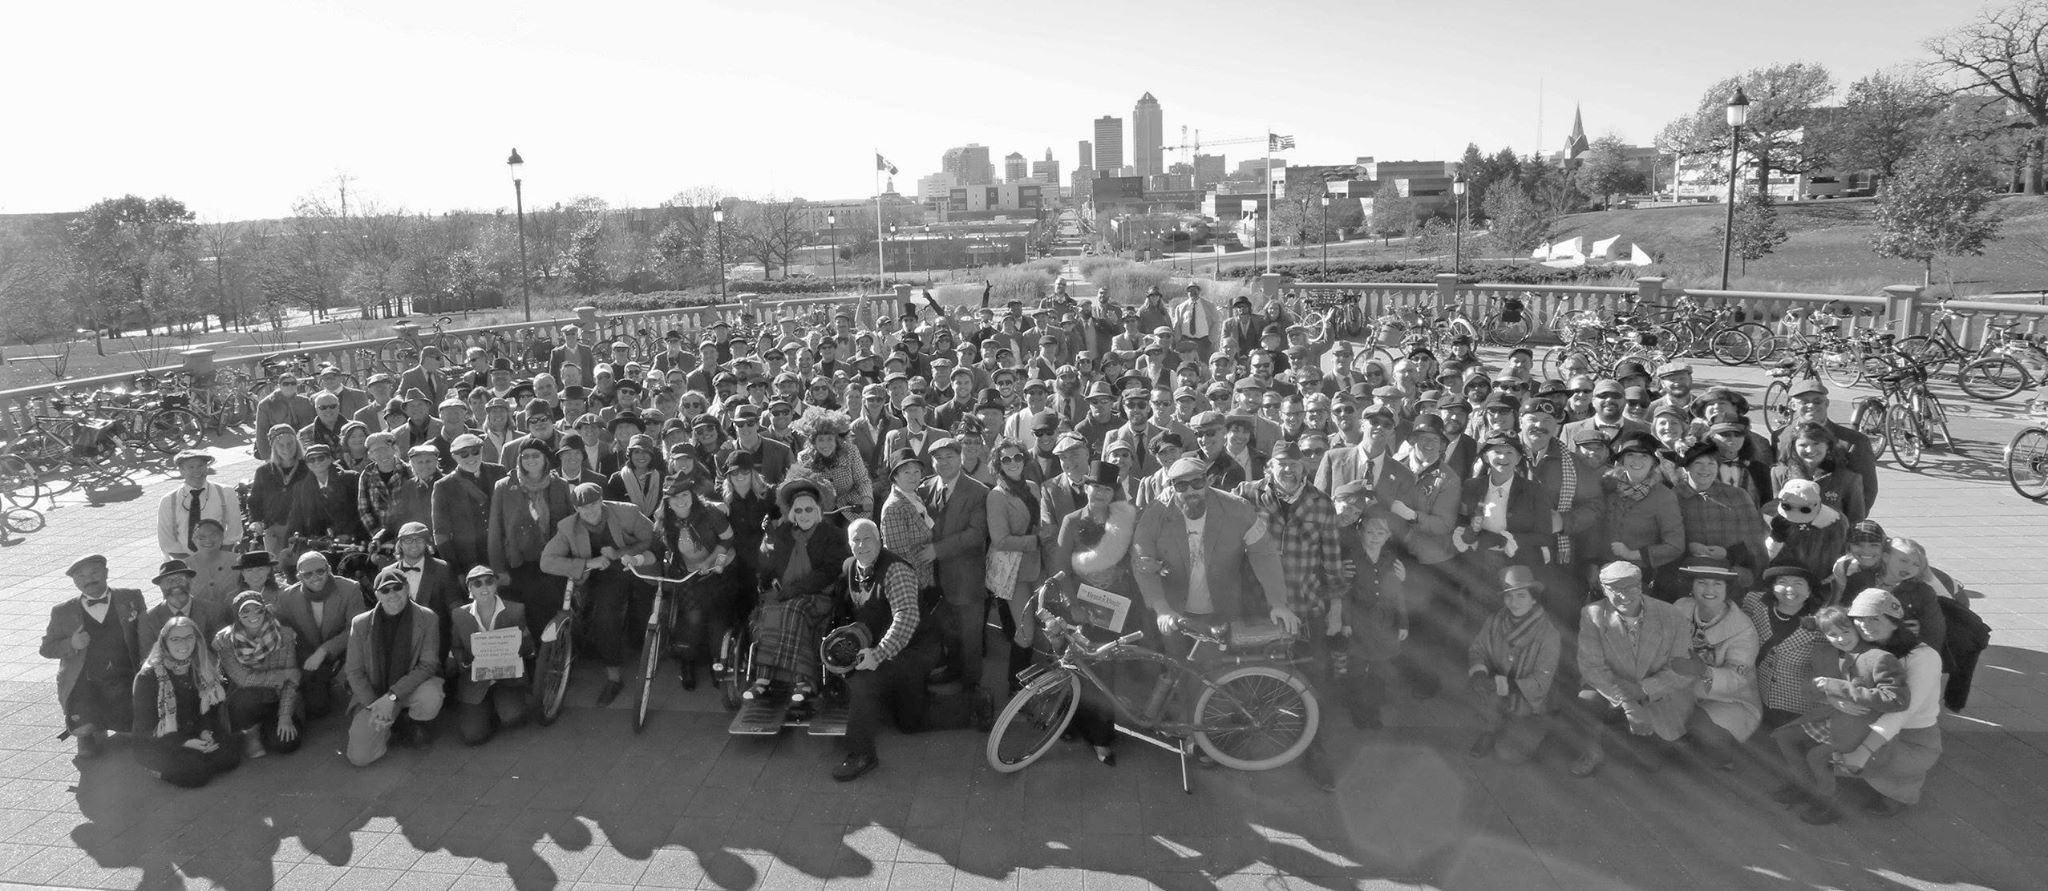 Tweed Ride 2015 State Capital BW